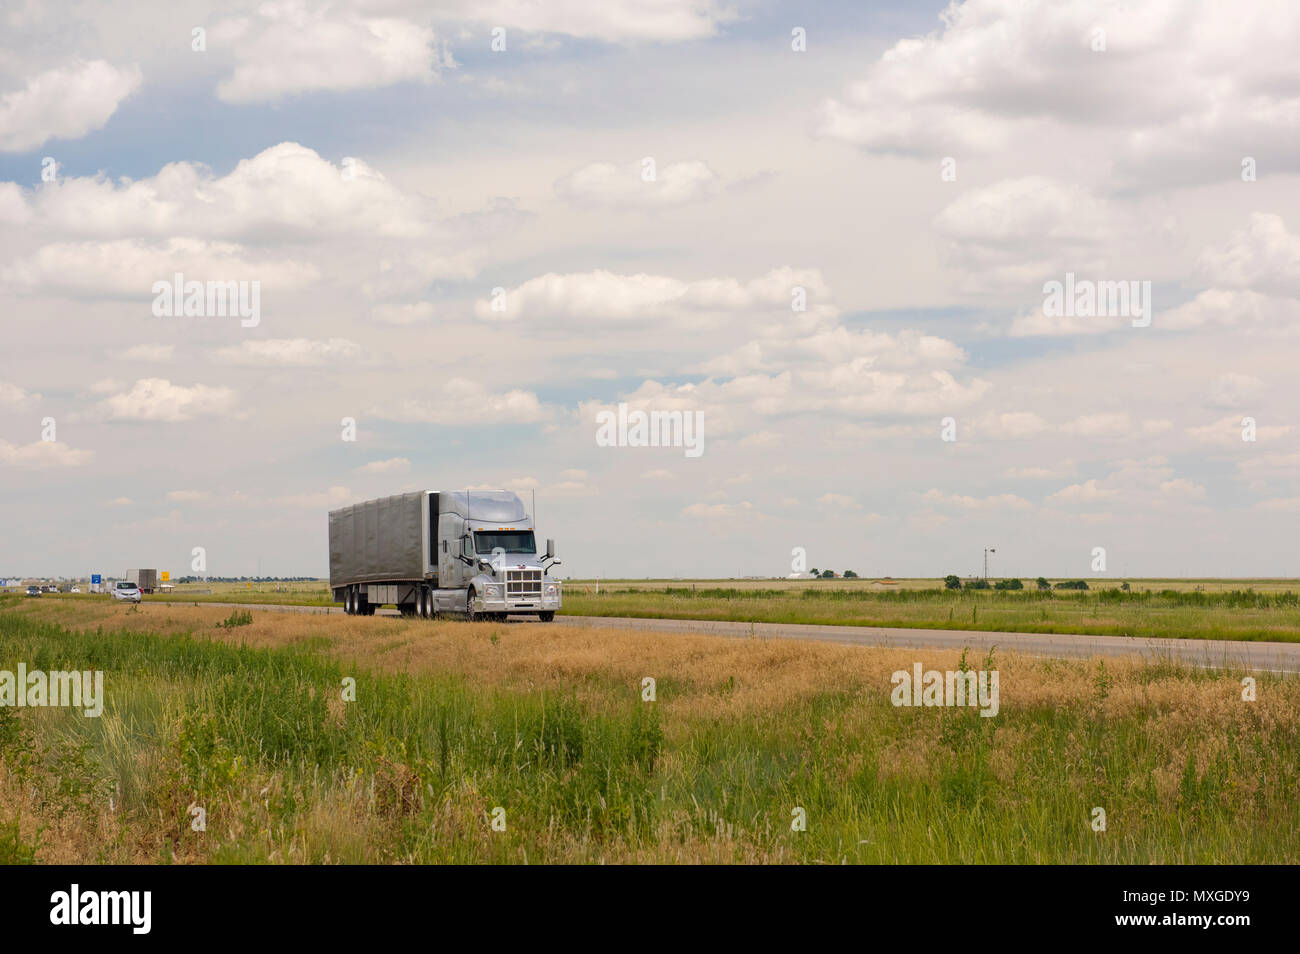 Truck driving on Route 40 in Texas - Stock Image